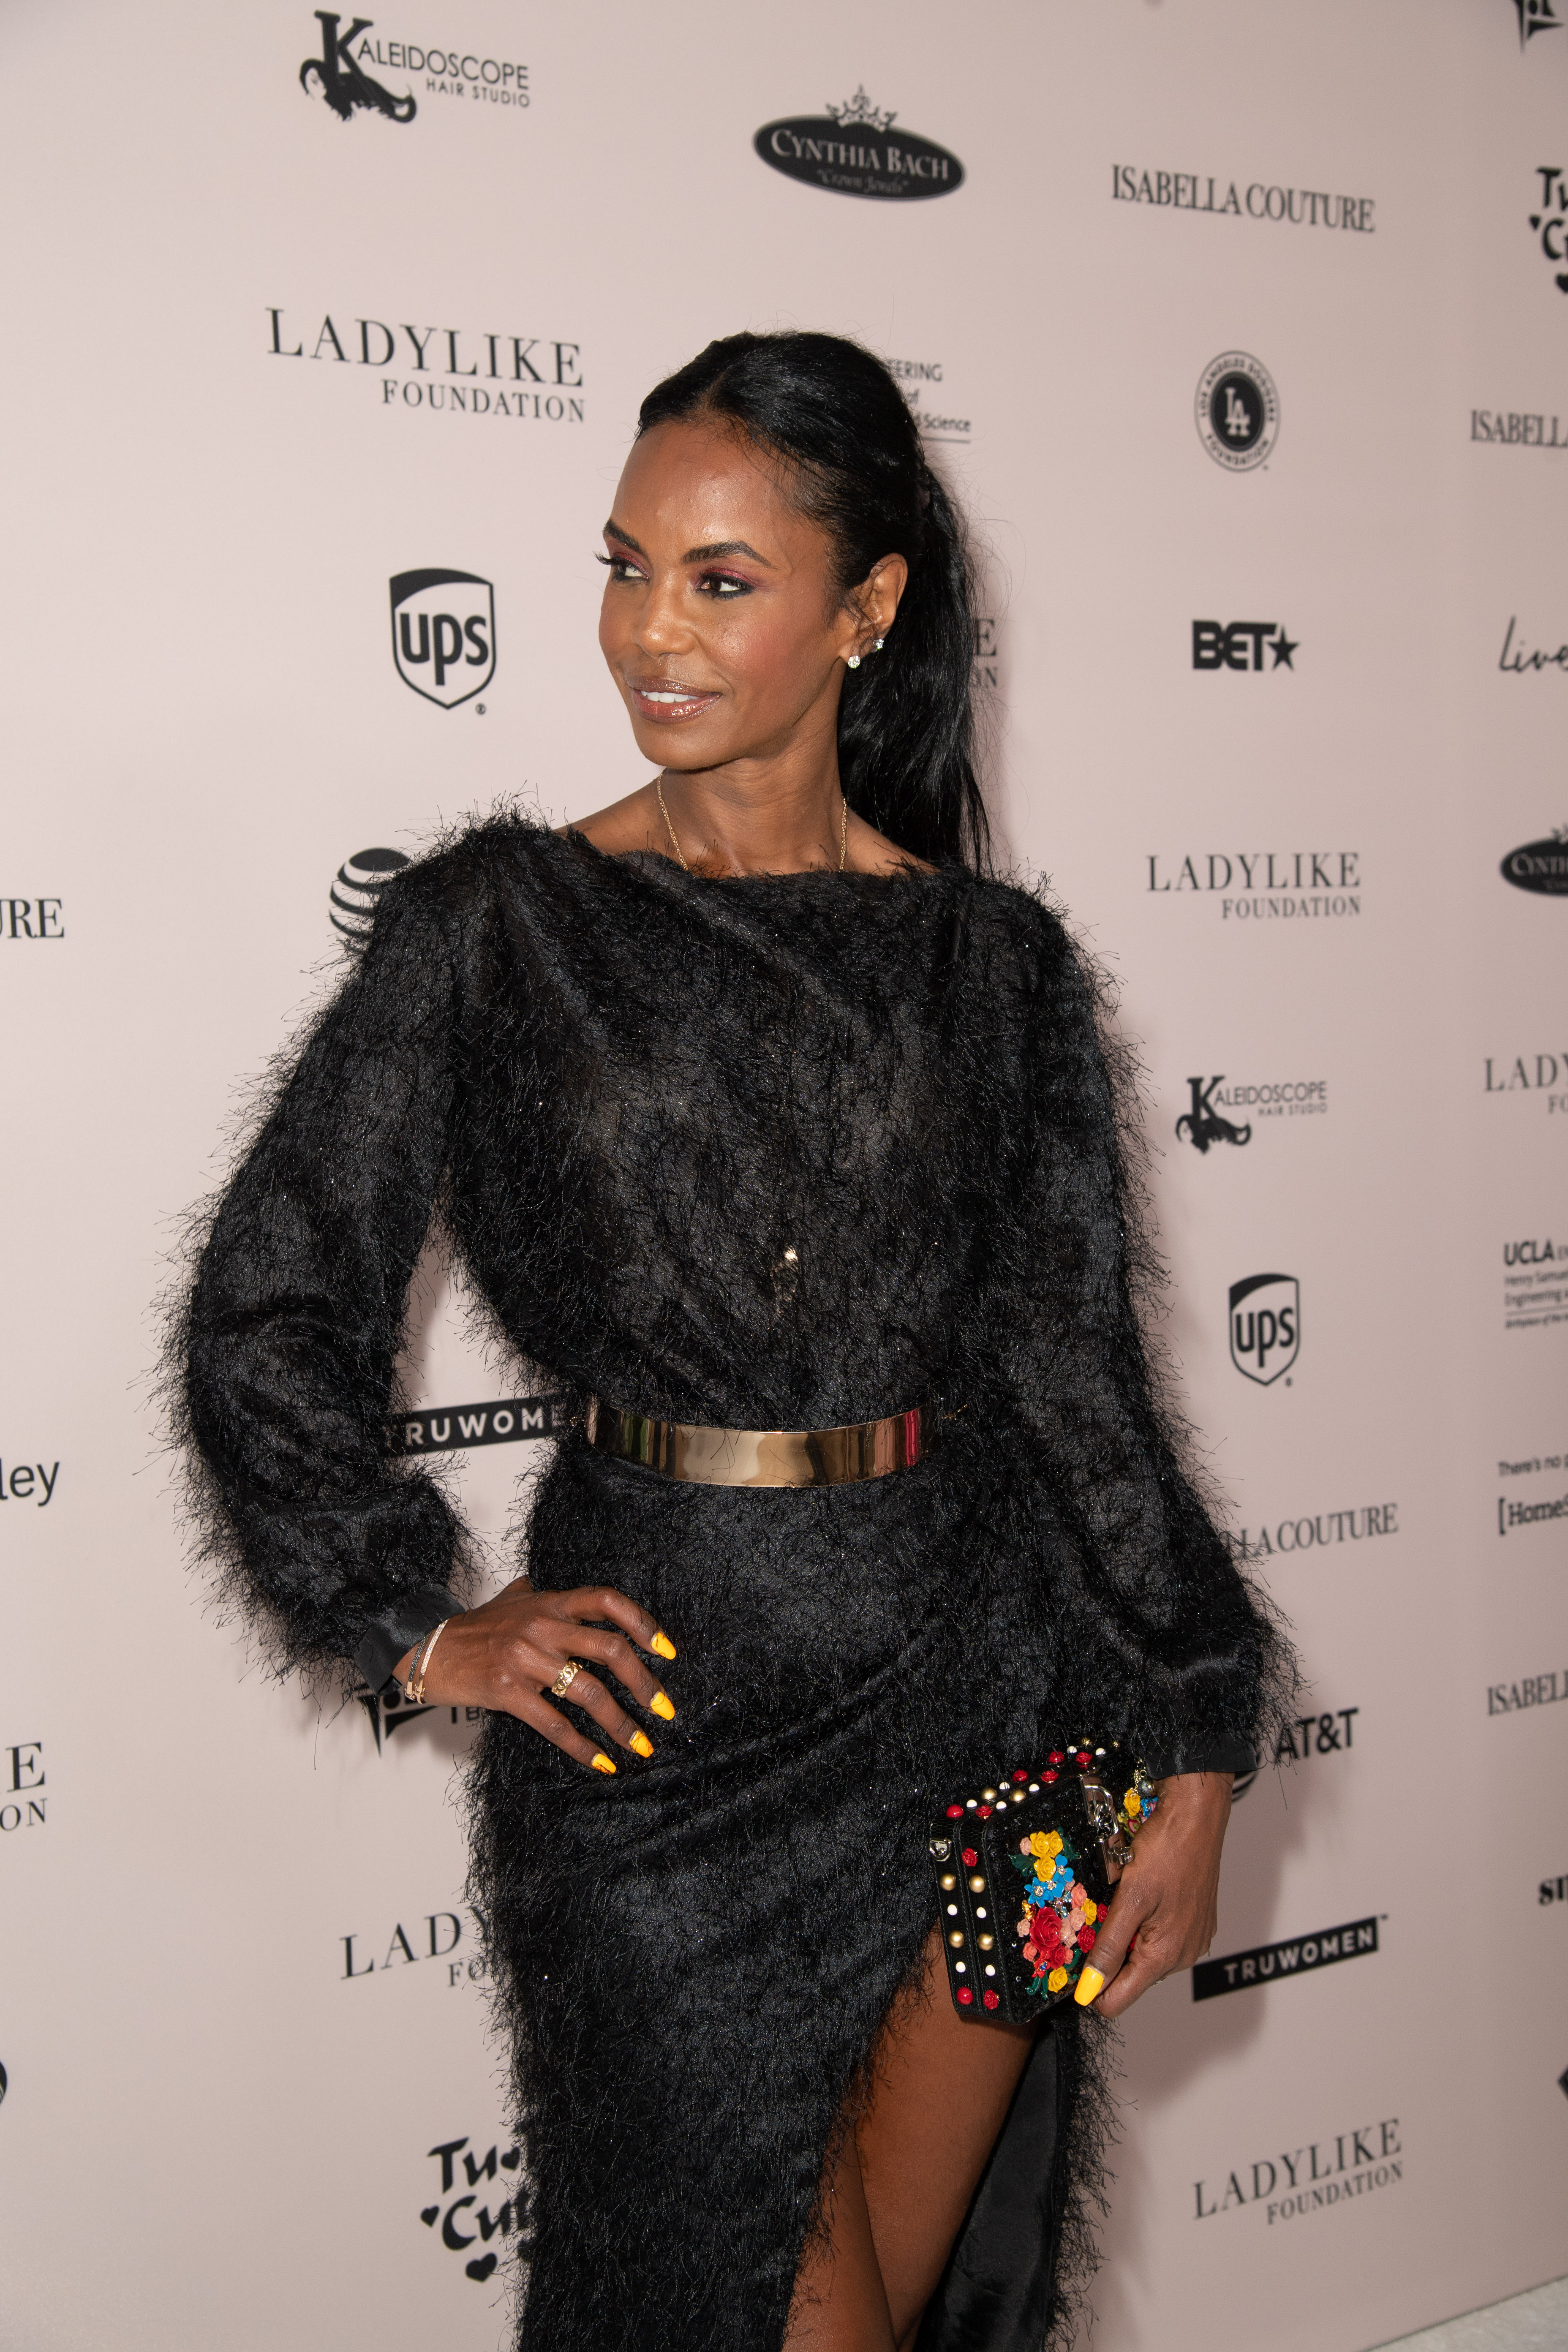 Kim Porter attends the Ladylike Foundation's 2018 Annual Women Of Excellence Scholarship Luncheon at The Beverly Hilton Hotel on June 2, 2018 in Beverly Hills, California.